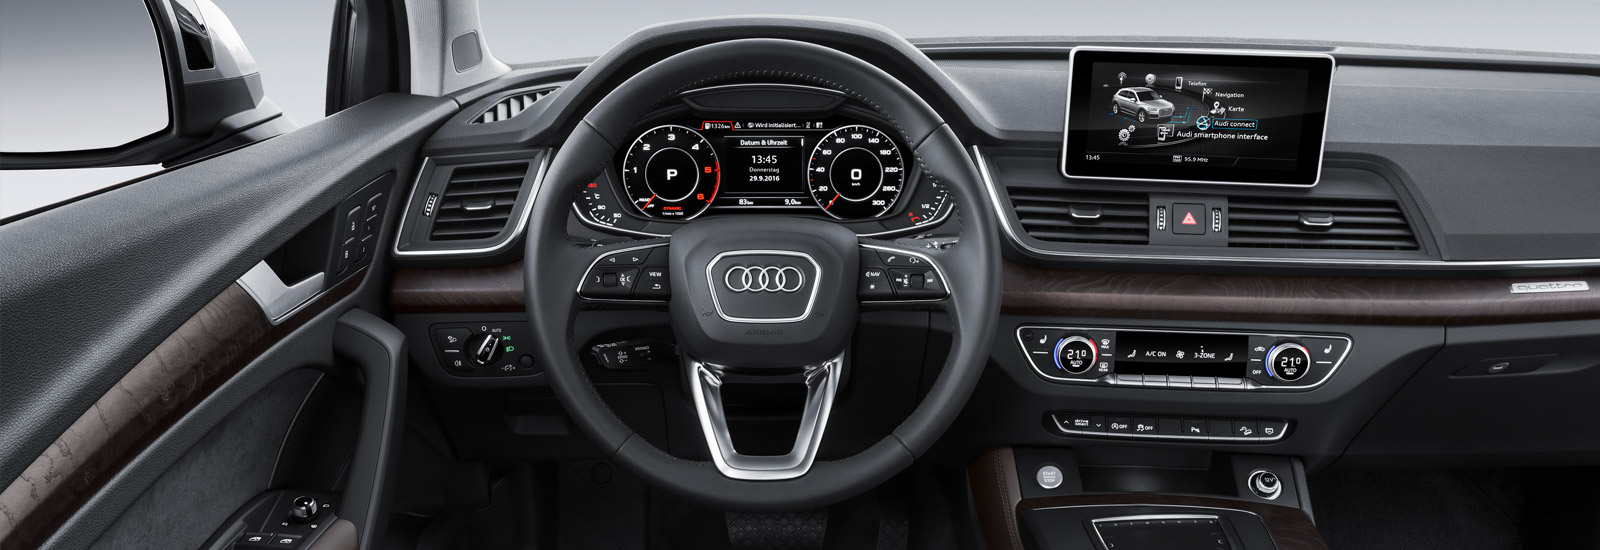 audi q3 neu 2018. simple audi elements from the q5u0027s dashboard shown here should find their way to  new q3 on audi q3 neu 2018 i